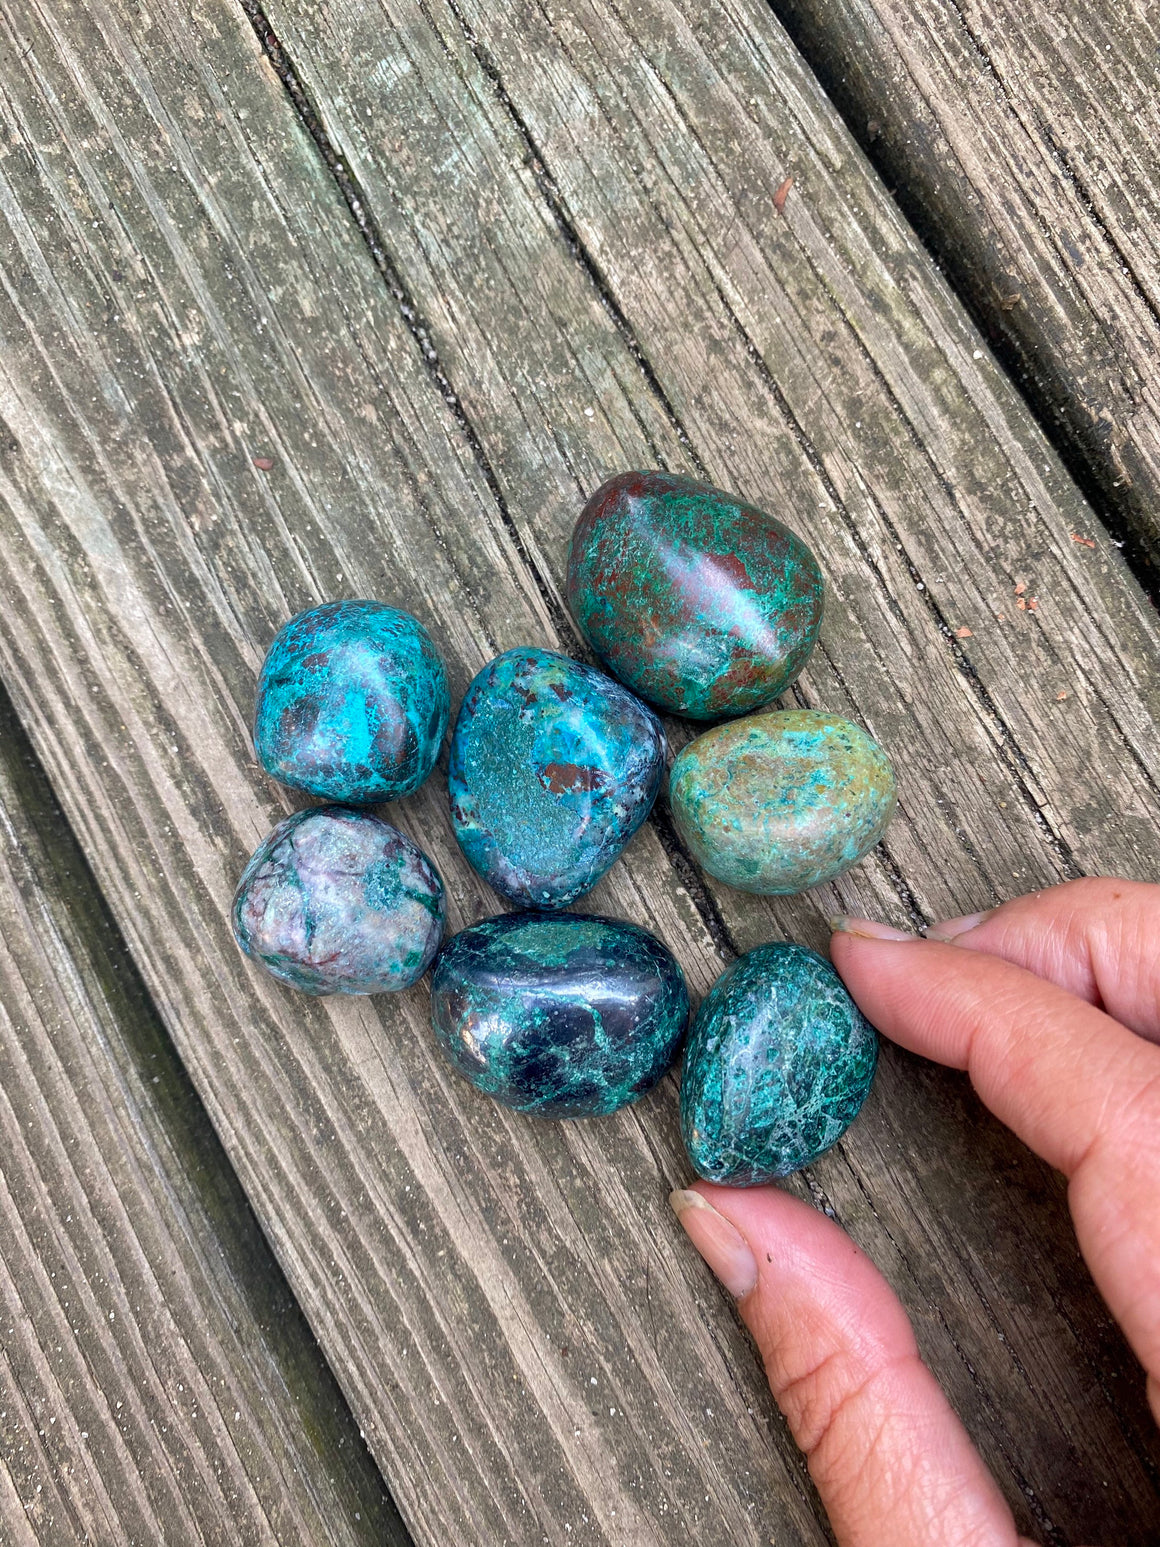 Small Polished High Quality Chrysacolla Tumble Stone / Natural Chrysacolla Crystal / Crystal for Balance New Beginnings and Change